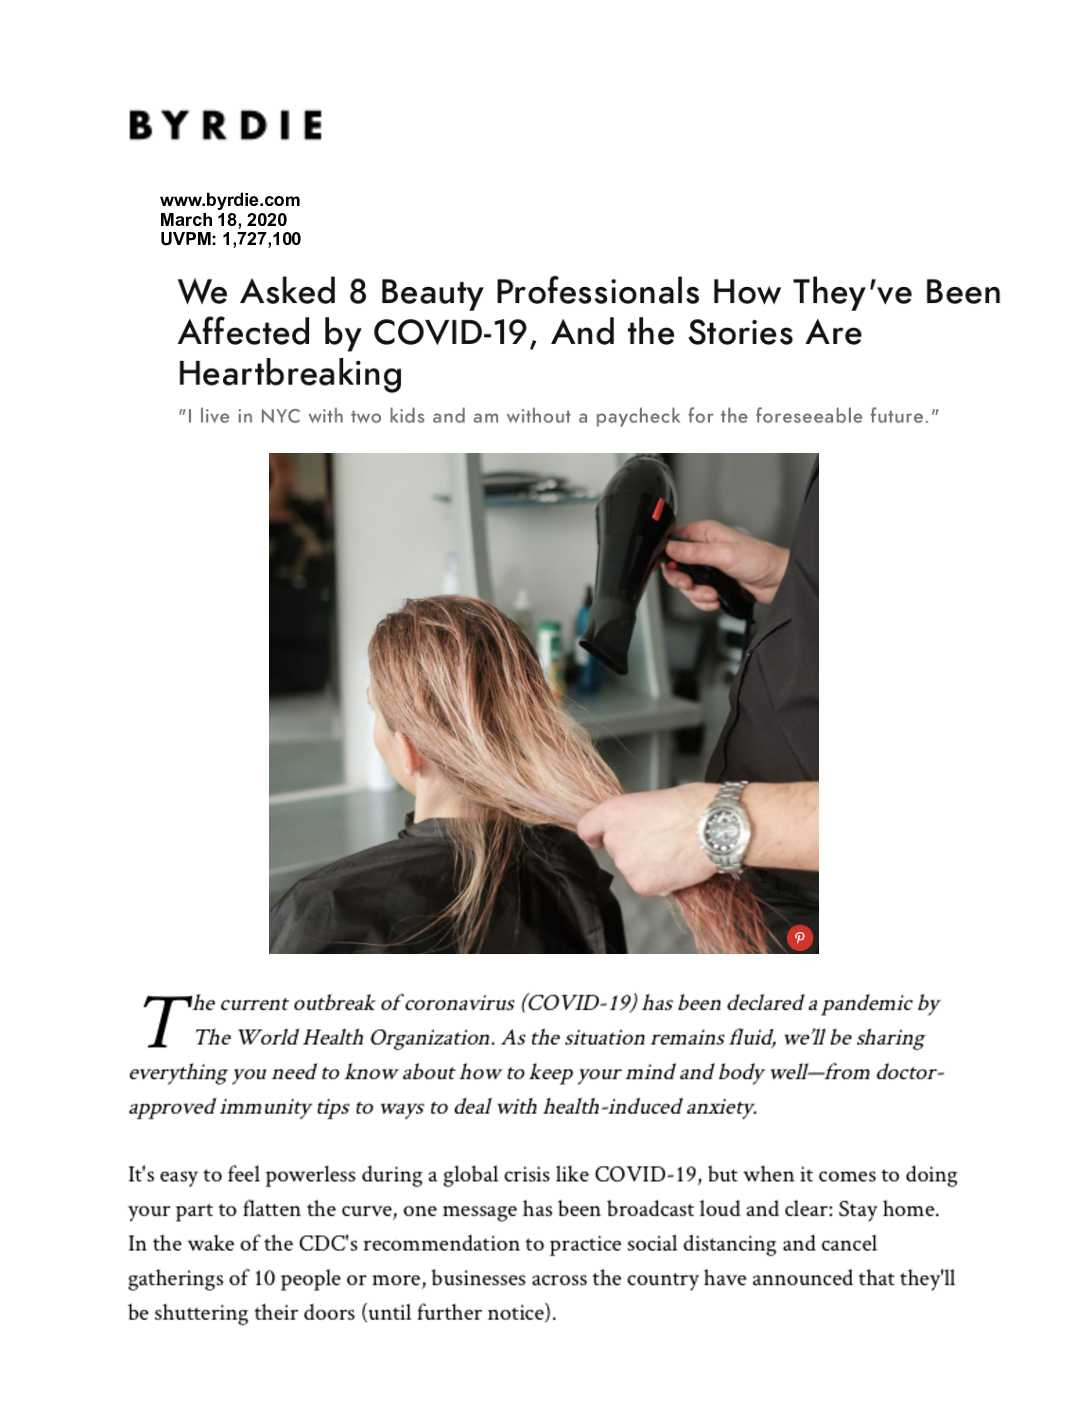 Link to a BYRDIE article about How Beauty Professionals are dealing with COVID-19.